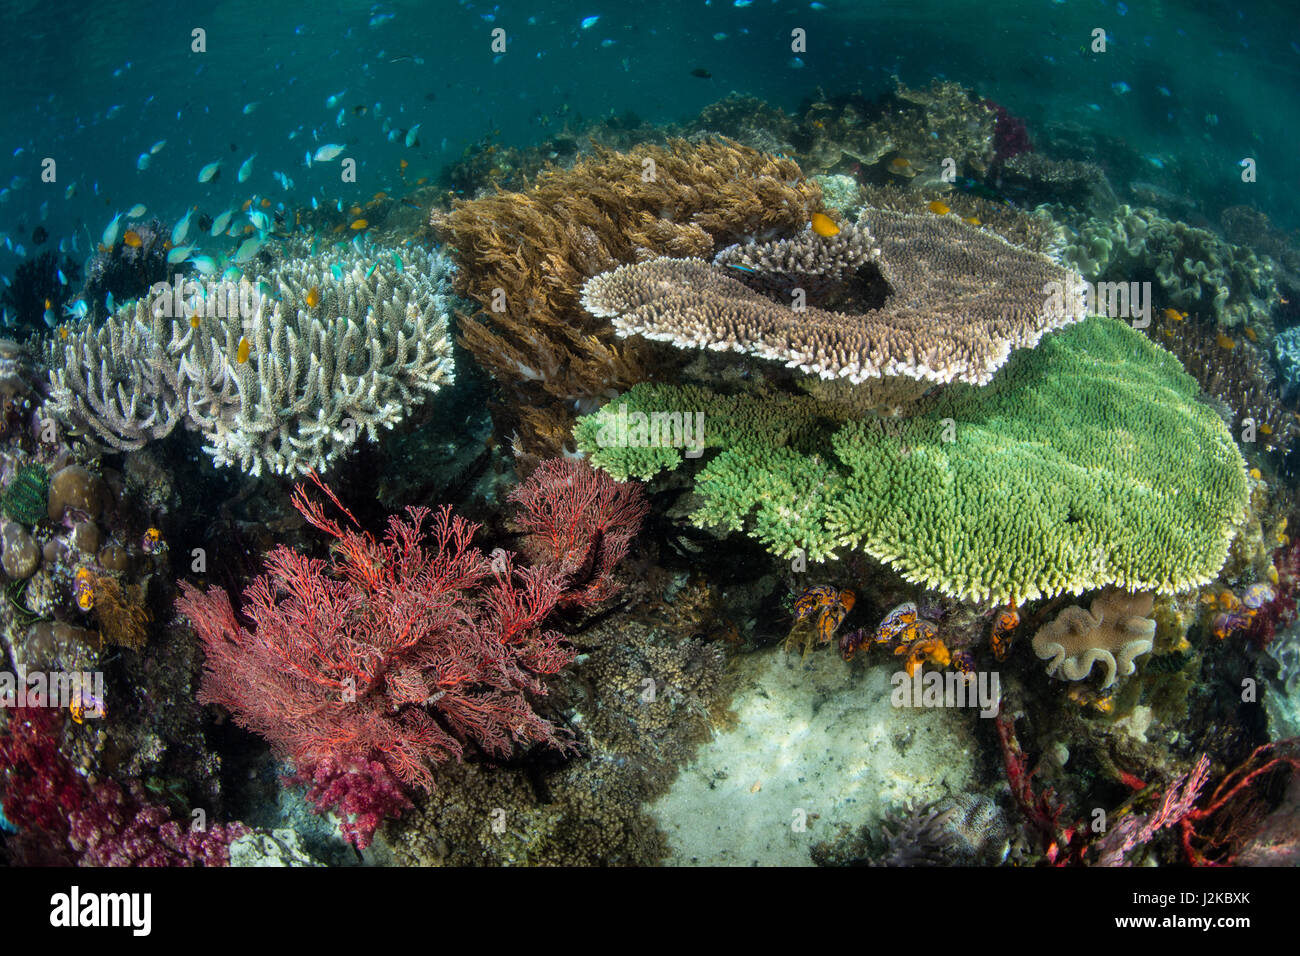 A vibrant coral reef grows in shallow water in Raja Ampat, Indonesia. This area is known for its spectacular marine - Stock Image